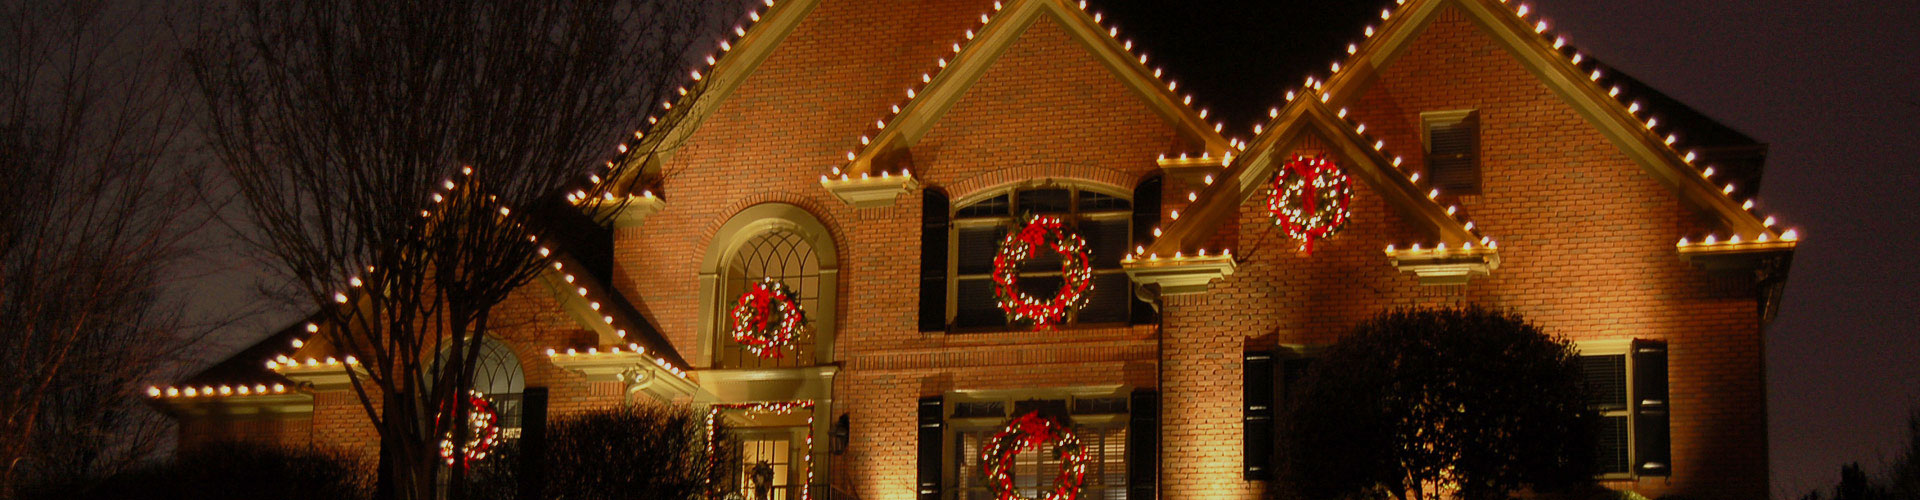 Memphis tn holiday lighting up your outdoor lighting and dcor after the first of the year we will come back to take all the decorations down and store them for you until the aloadofball